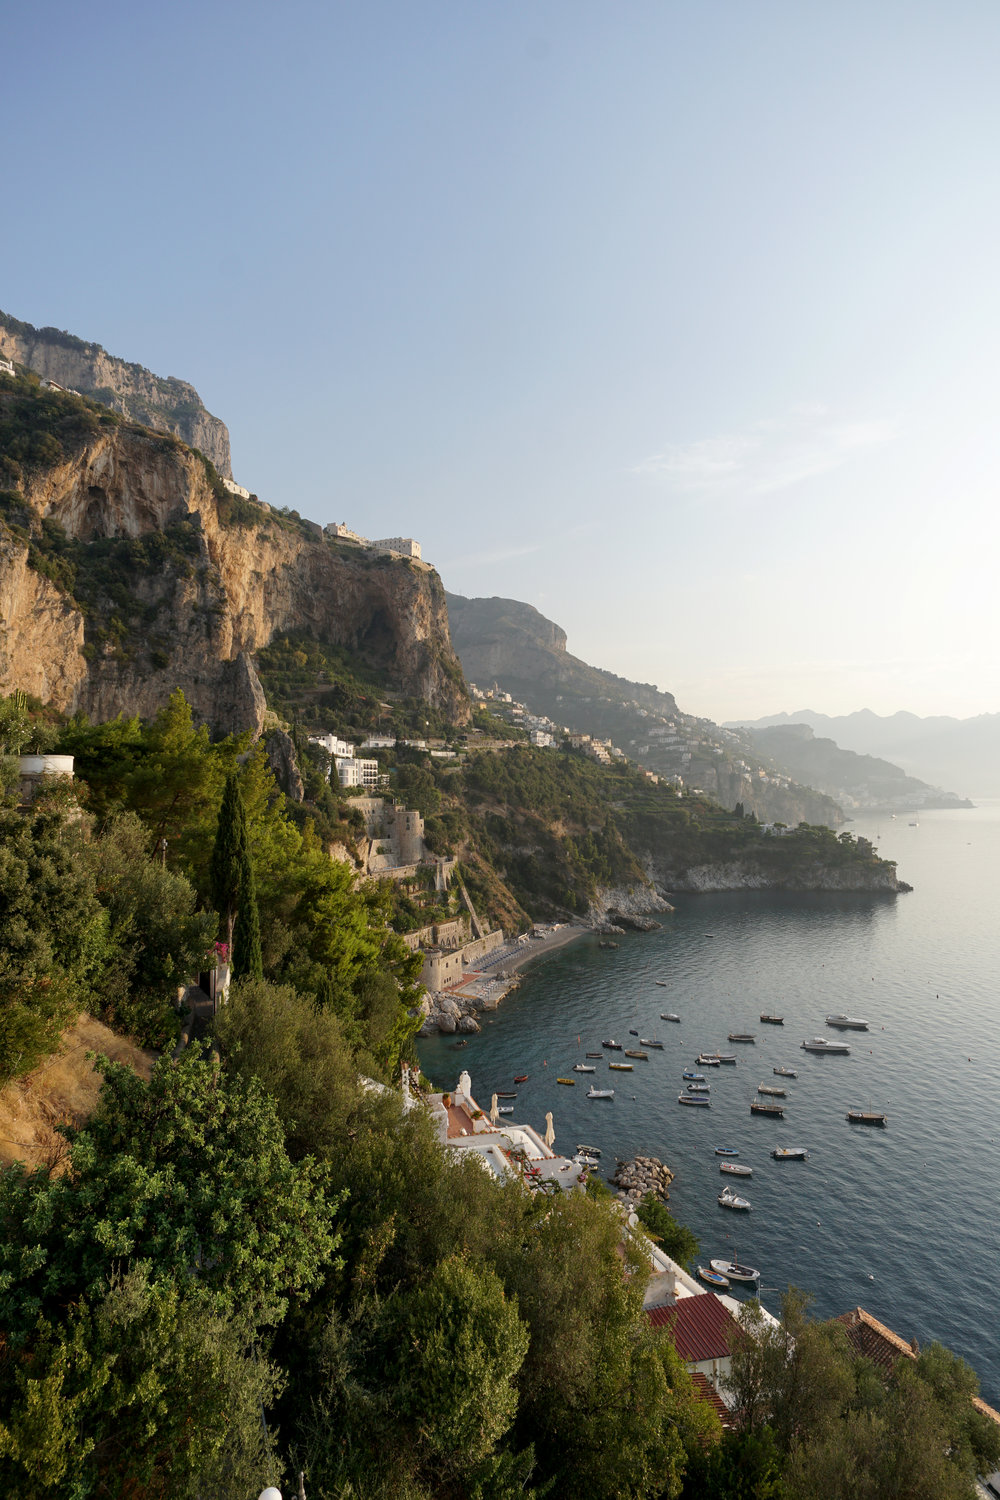 All the details of the Amalfi coast